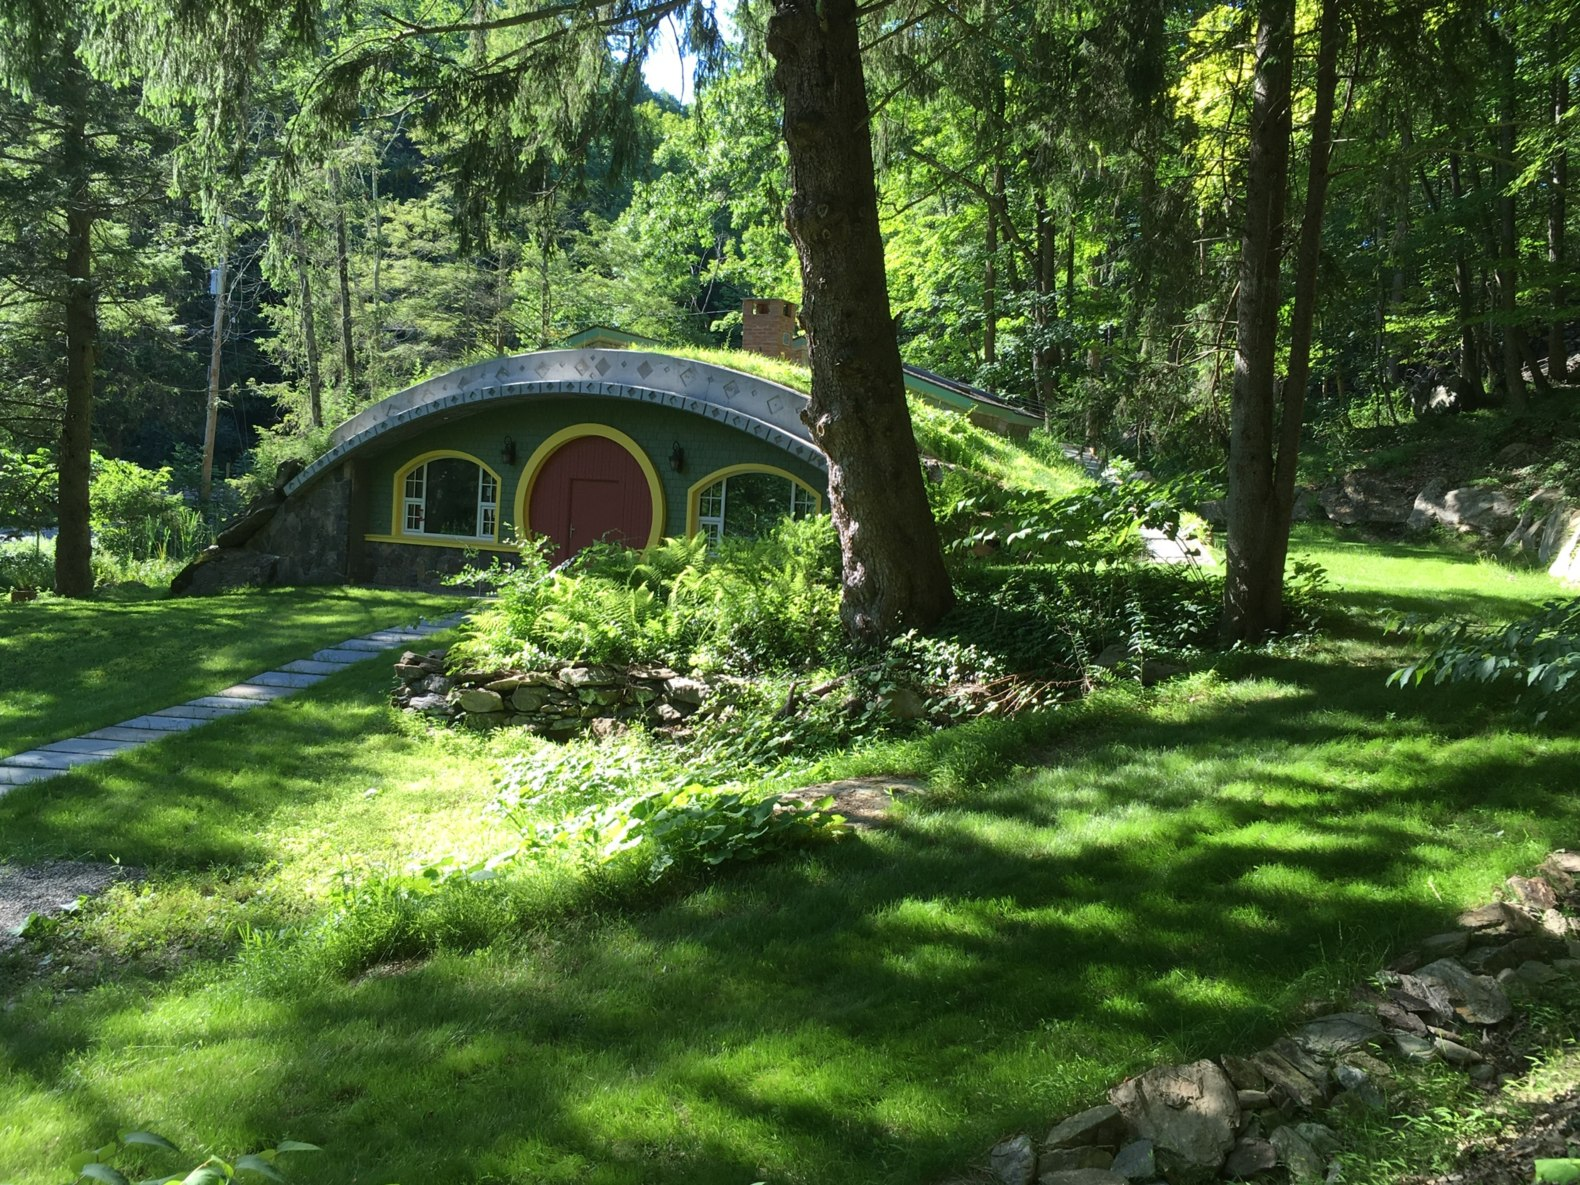 NY man spends 6 years building this incredible, energy-efficient hobbit home